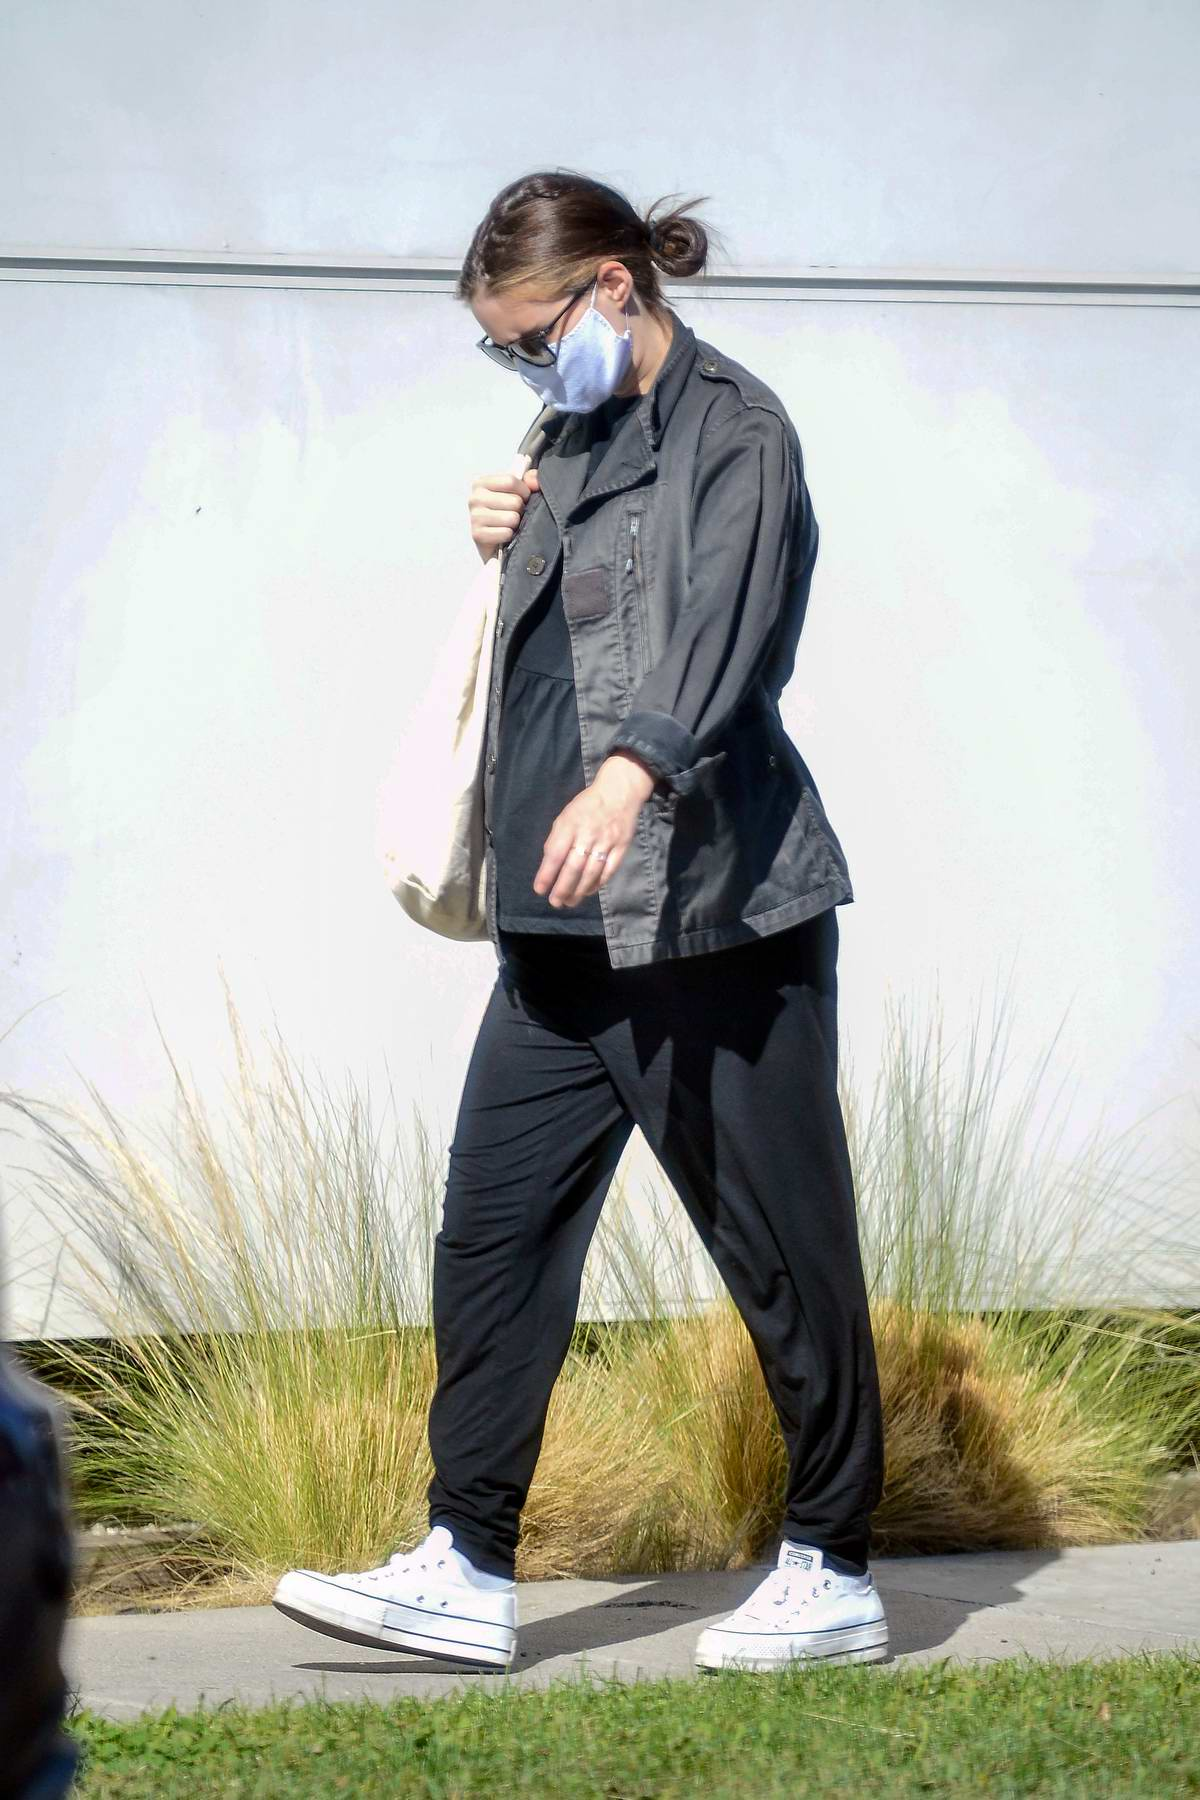 Rooney Mara shows off her growing baby bump while out for her doctor's appointment in Los Angeles